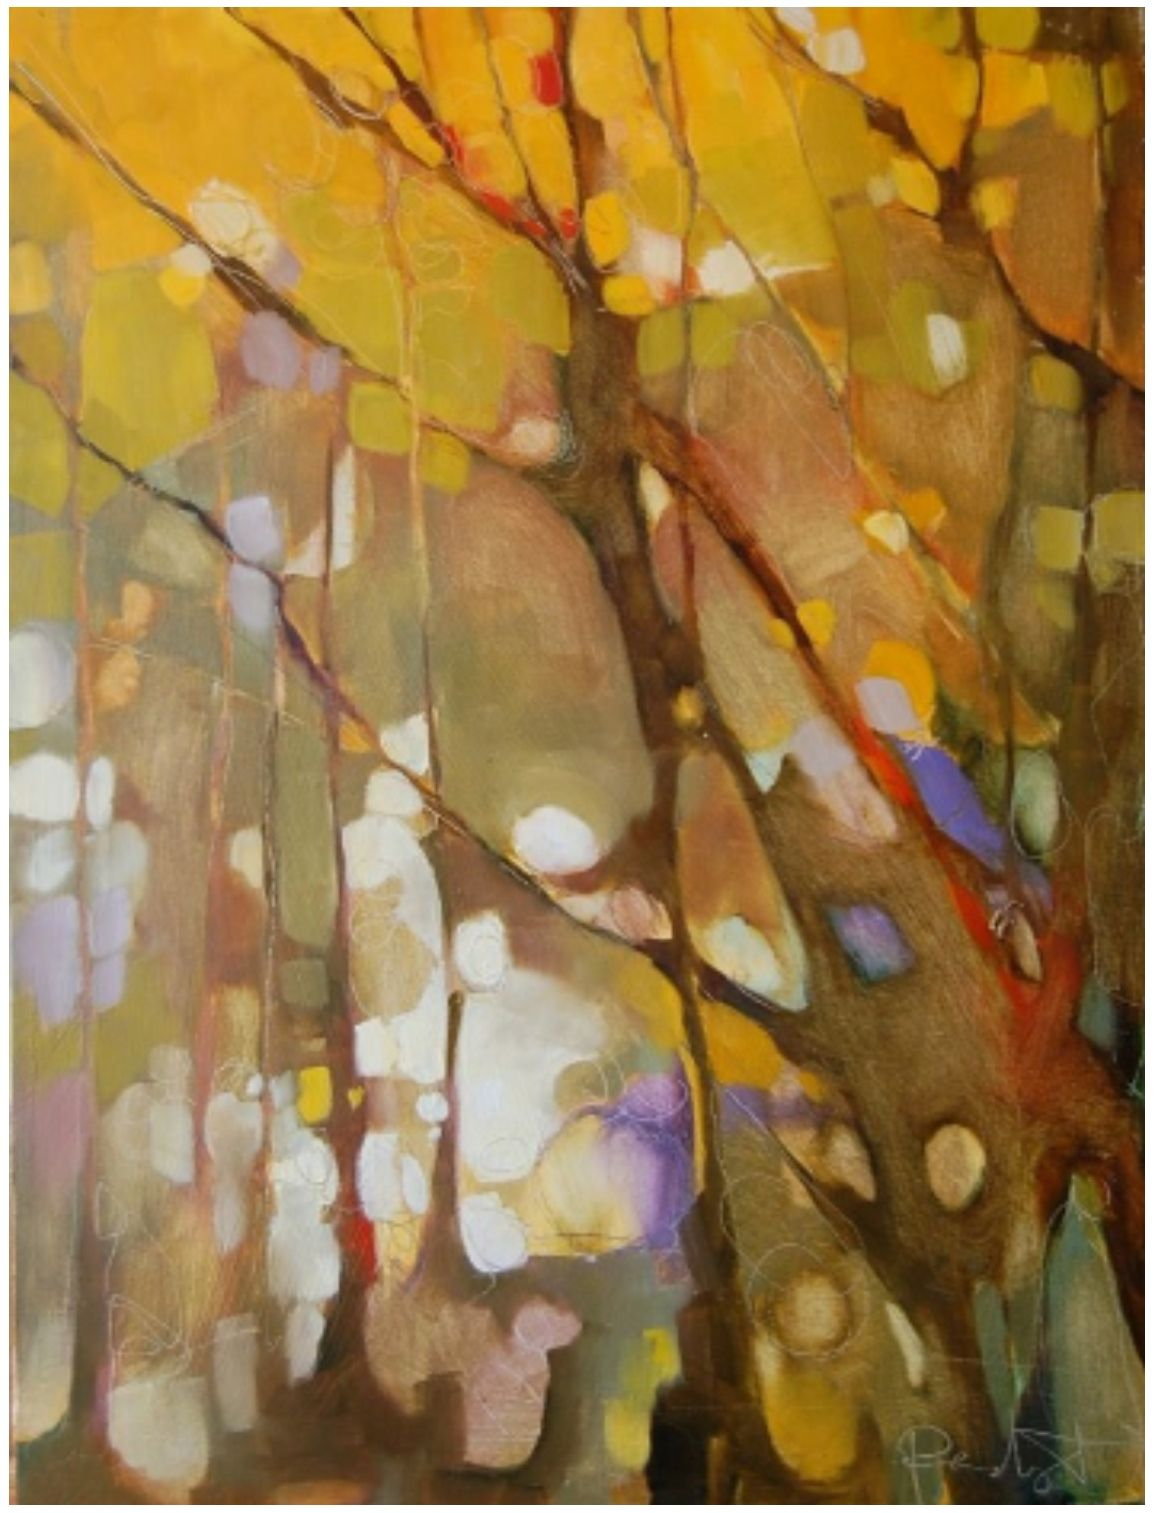 olivia pendergast this reminds me of an out of focus photo if you